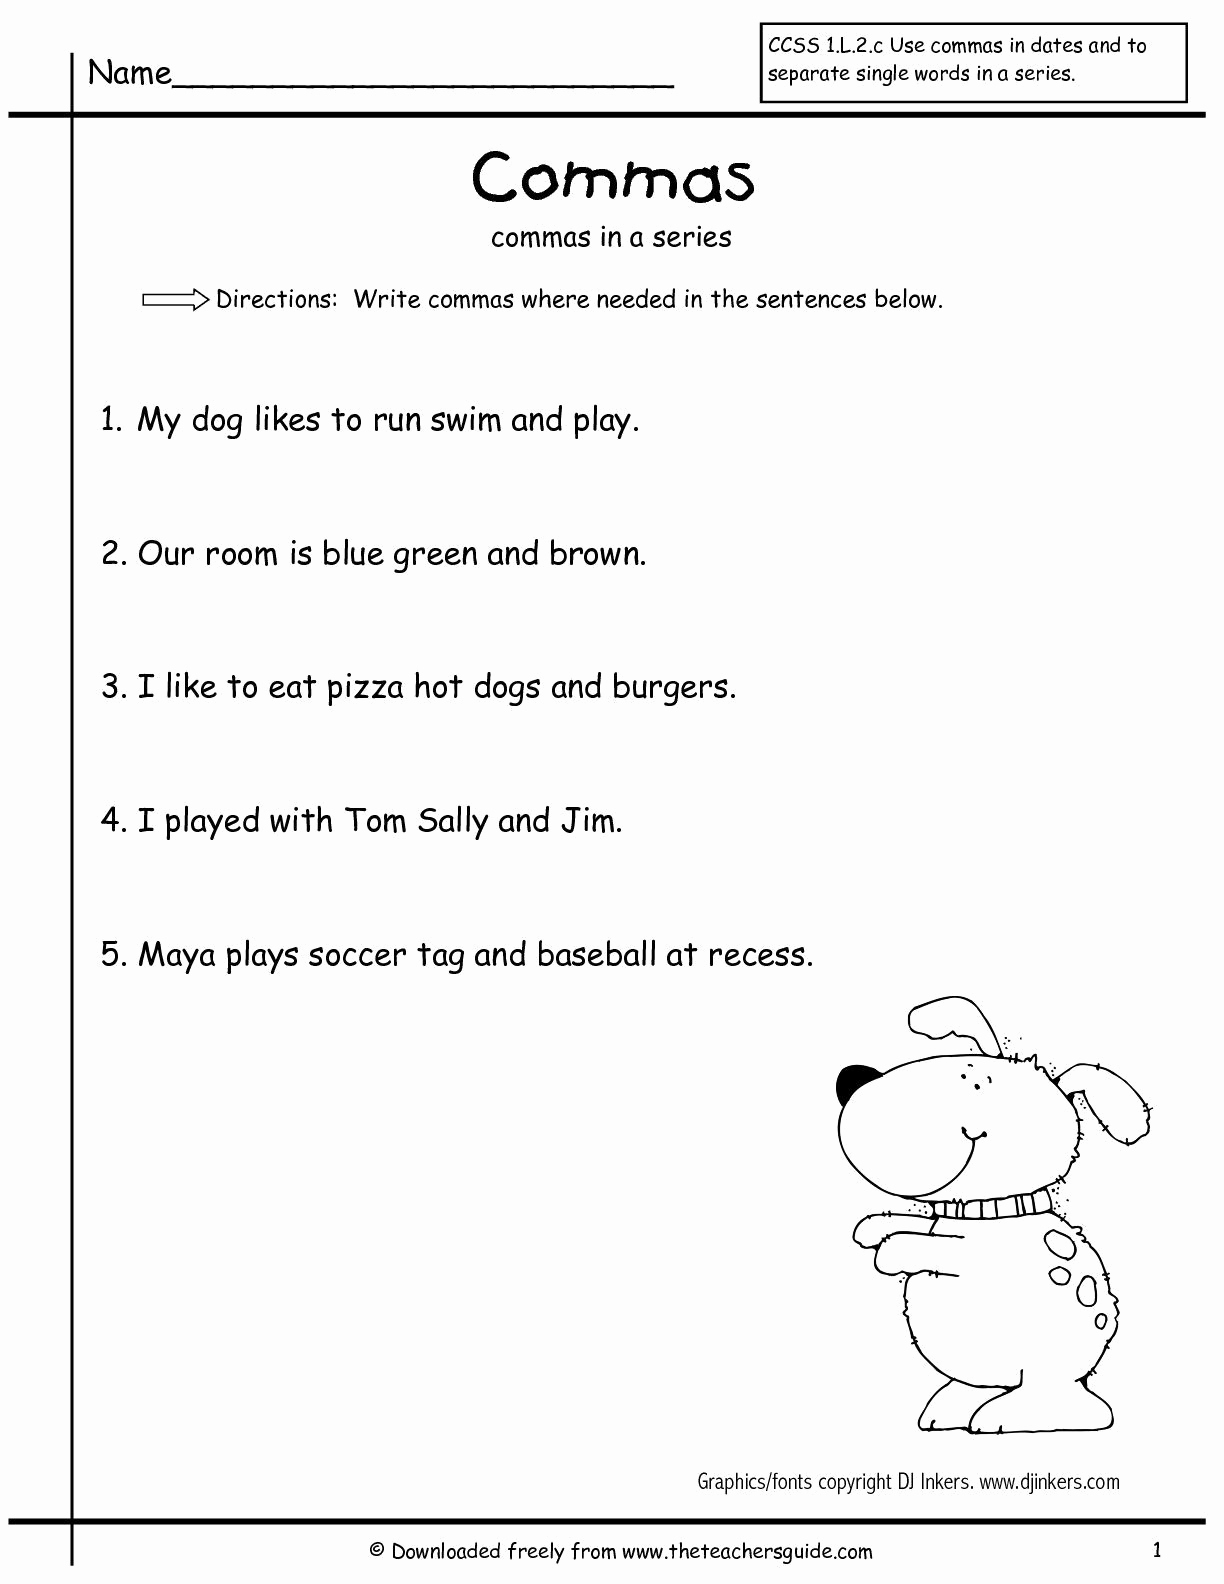 Comma Worksheet Middle School Pdf Inspirational 20 Ma Worksheets Middle School